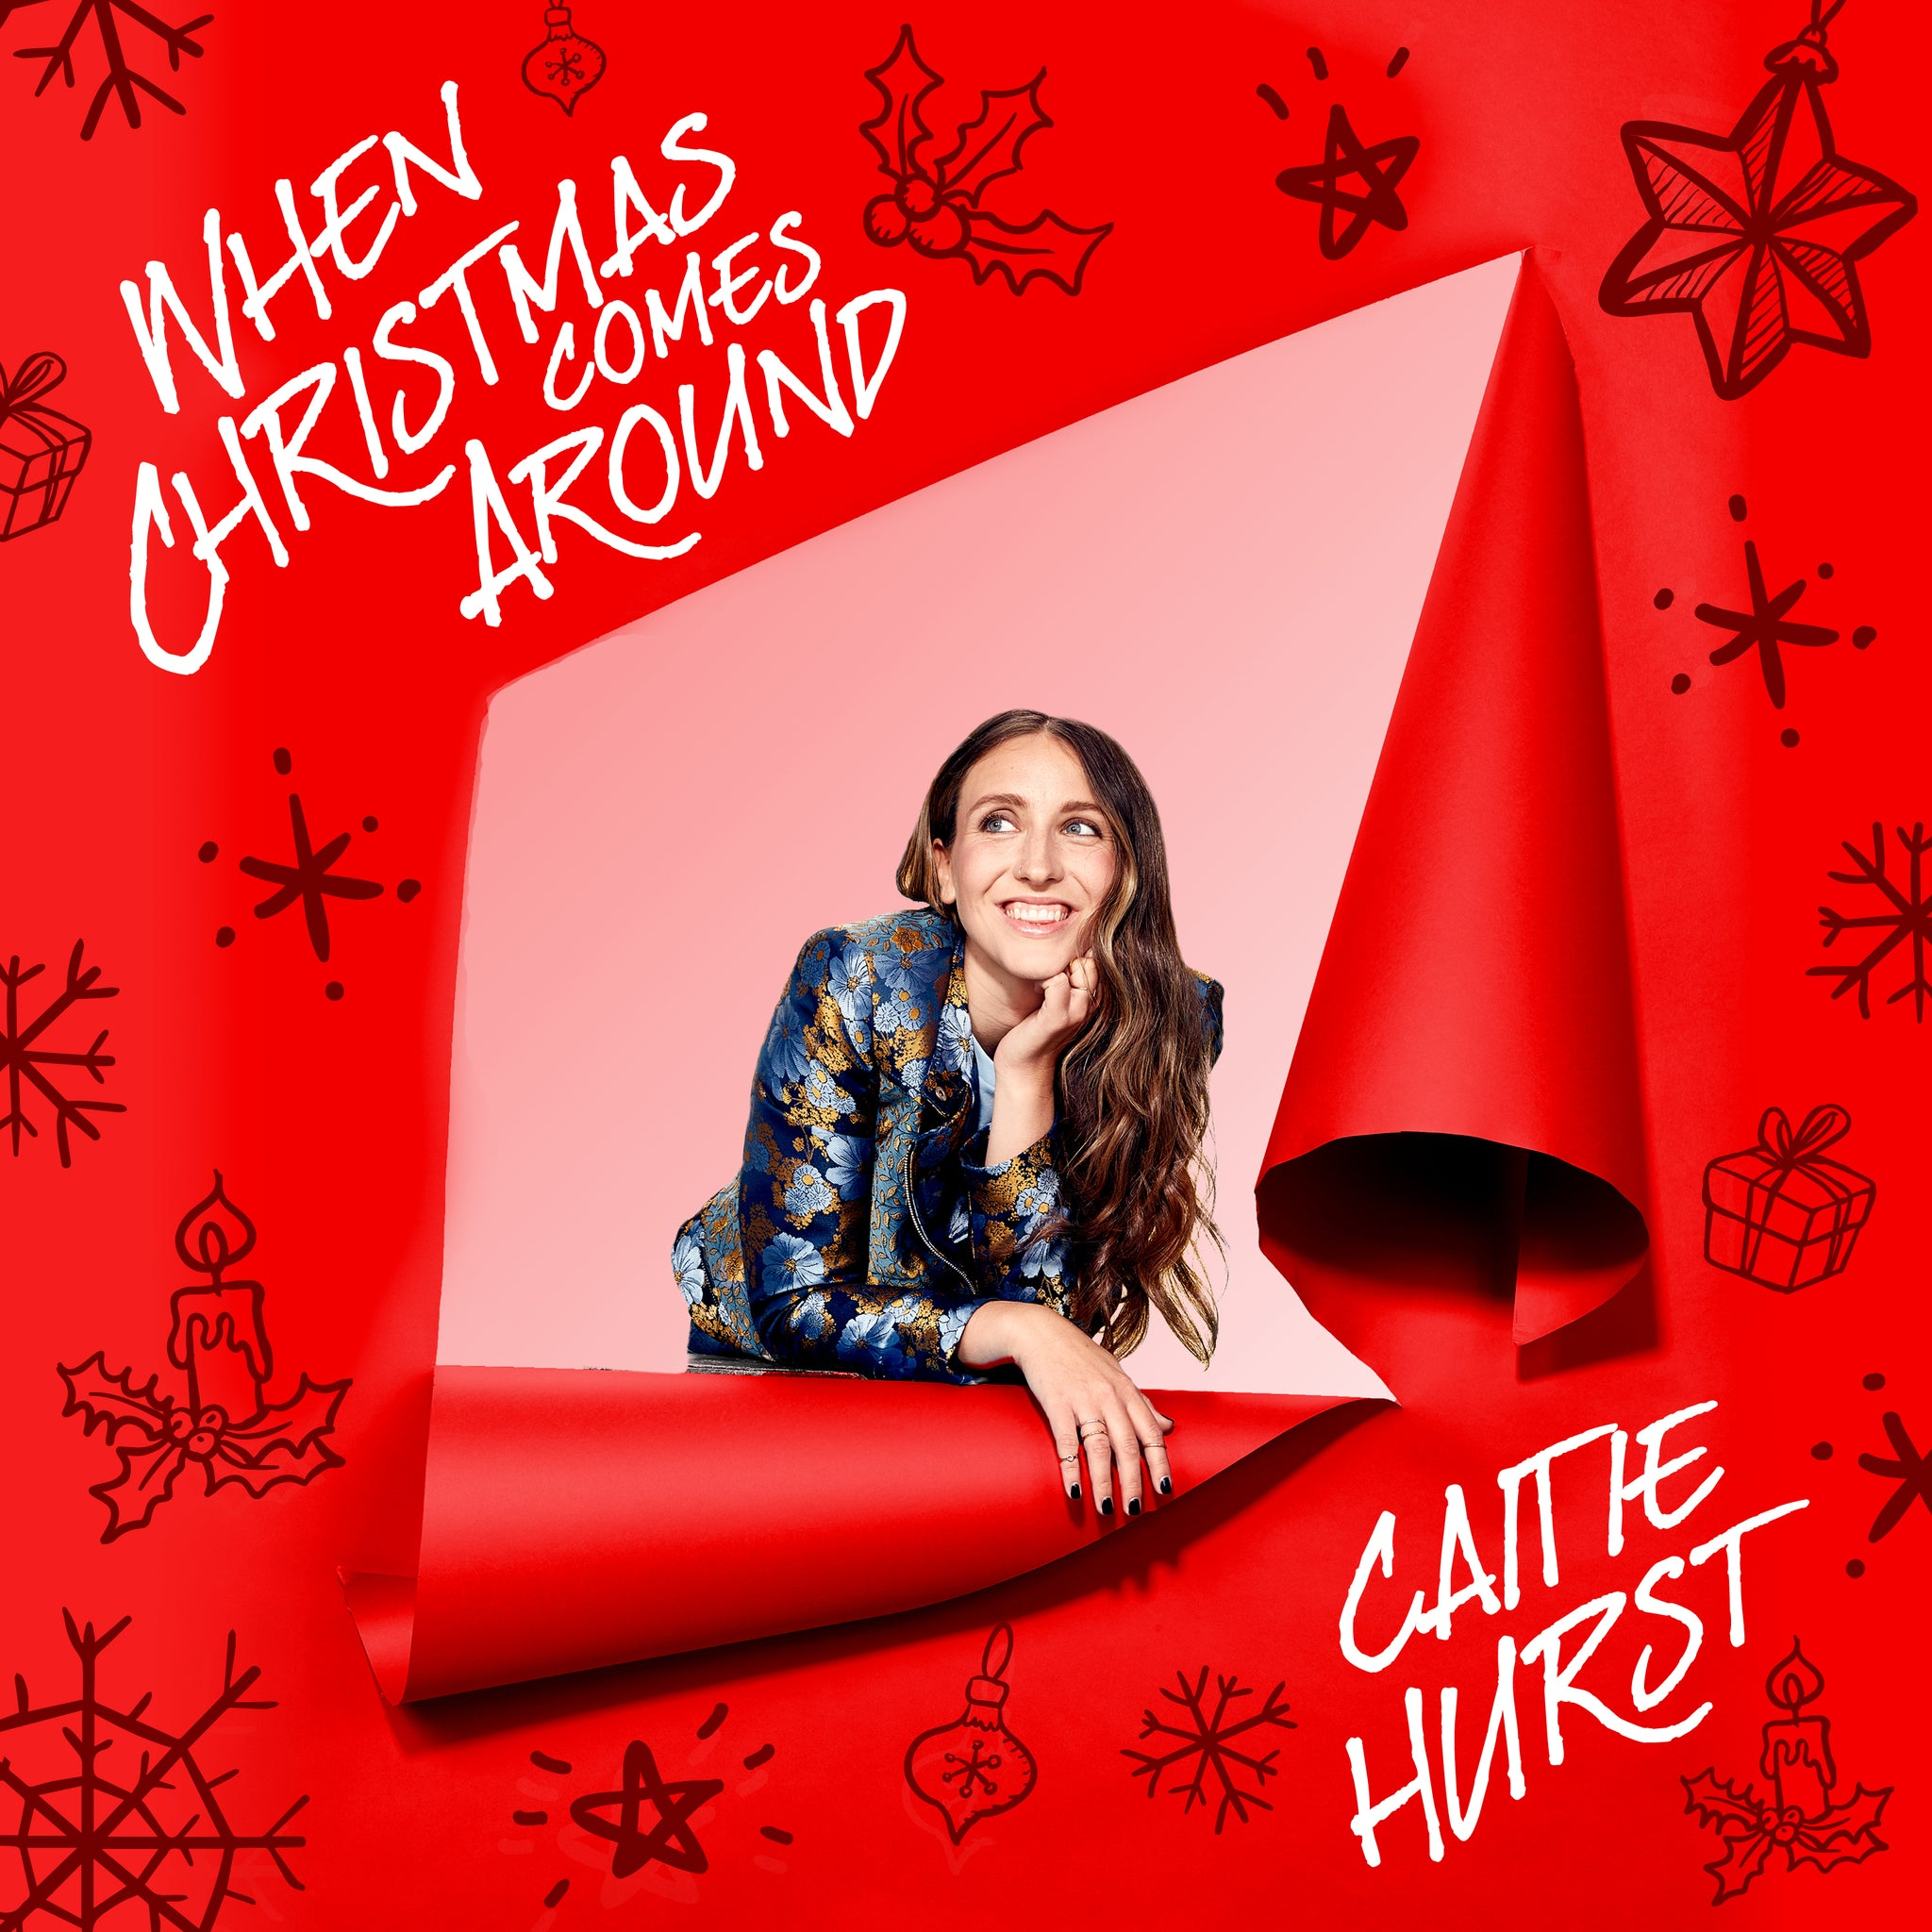 When Christmas Comes Around (Digital Single)